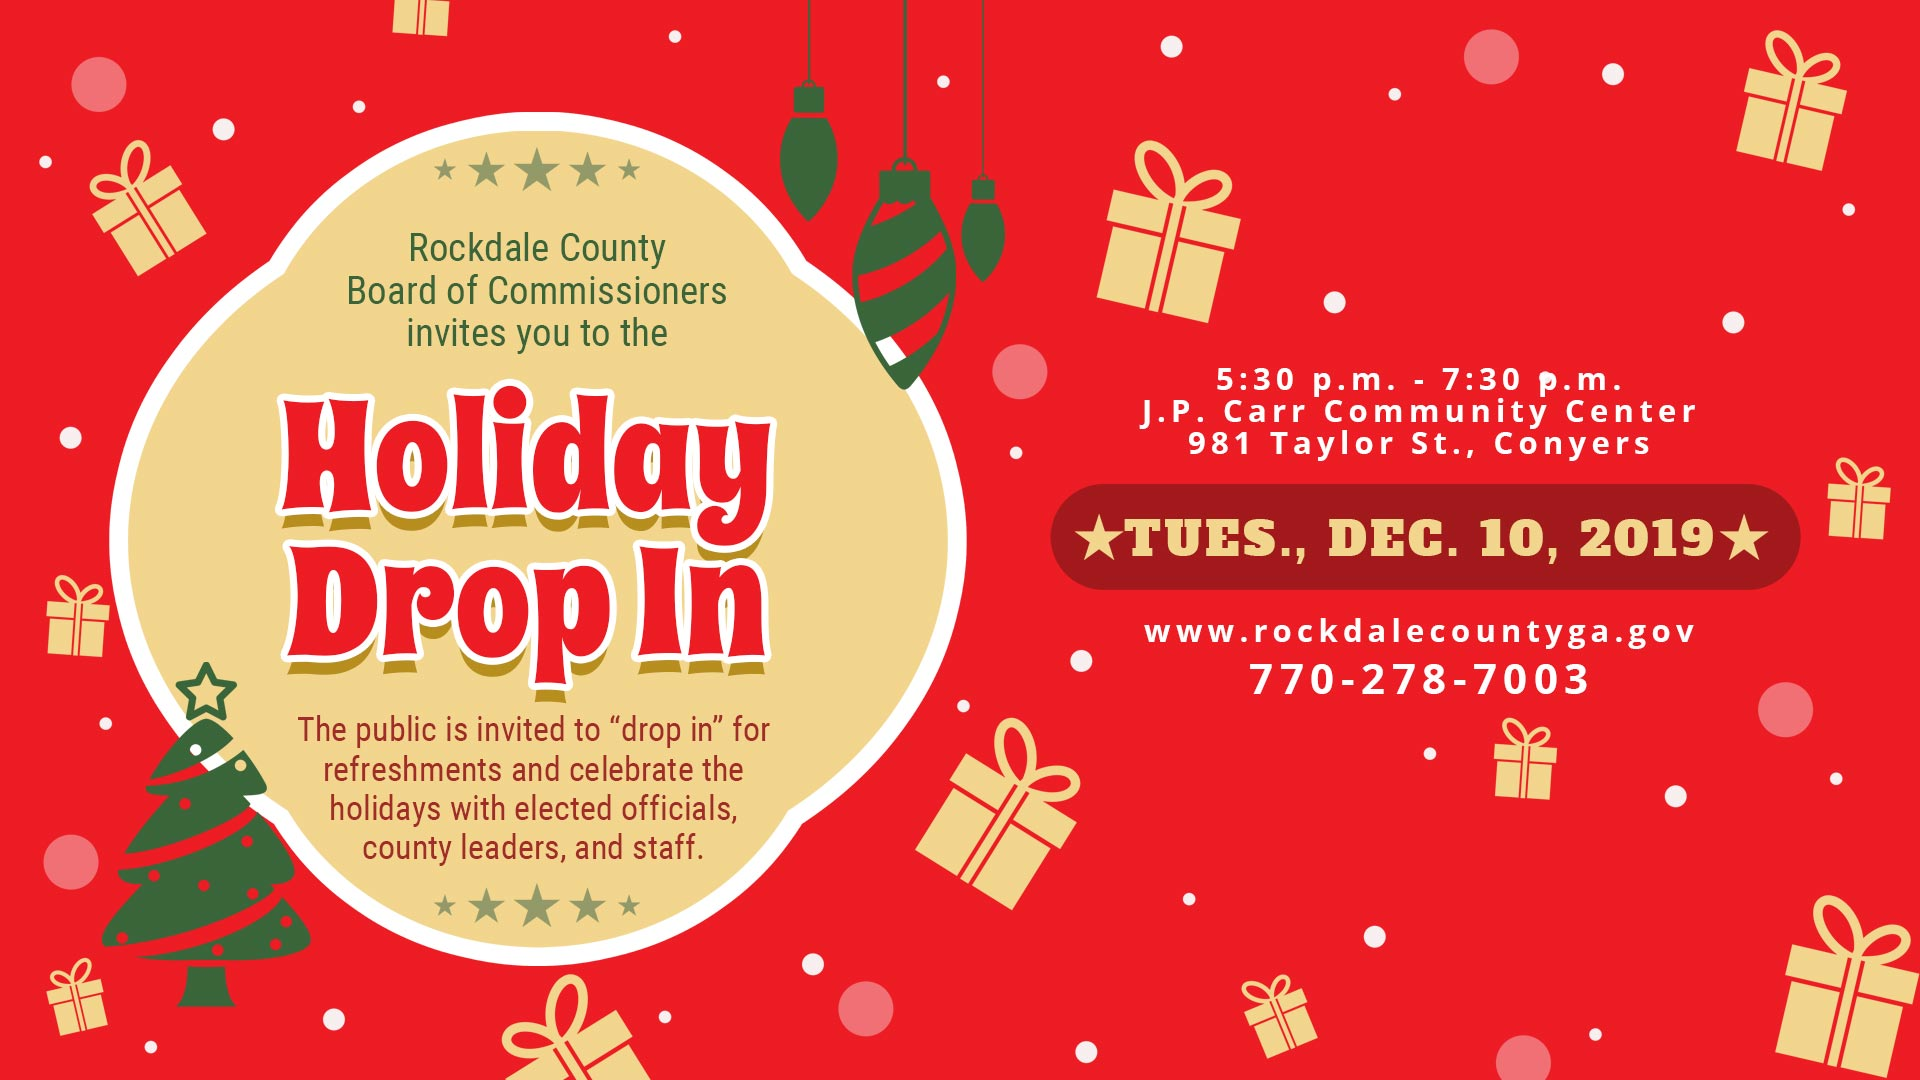 BOC Holiday Drop-In @ J.P. Carr Community Center